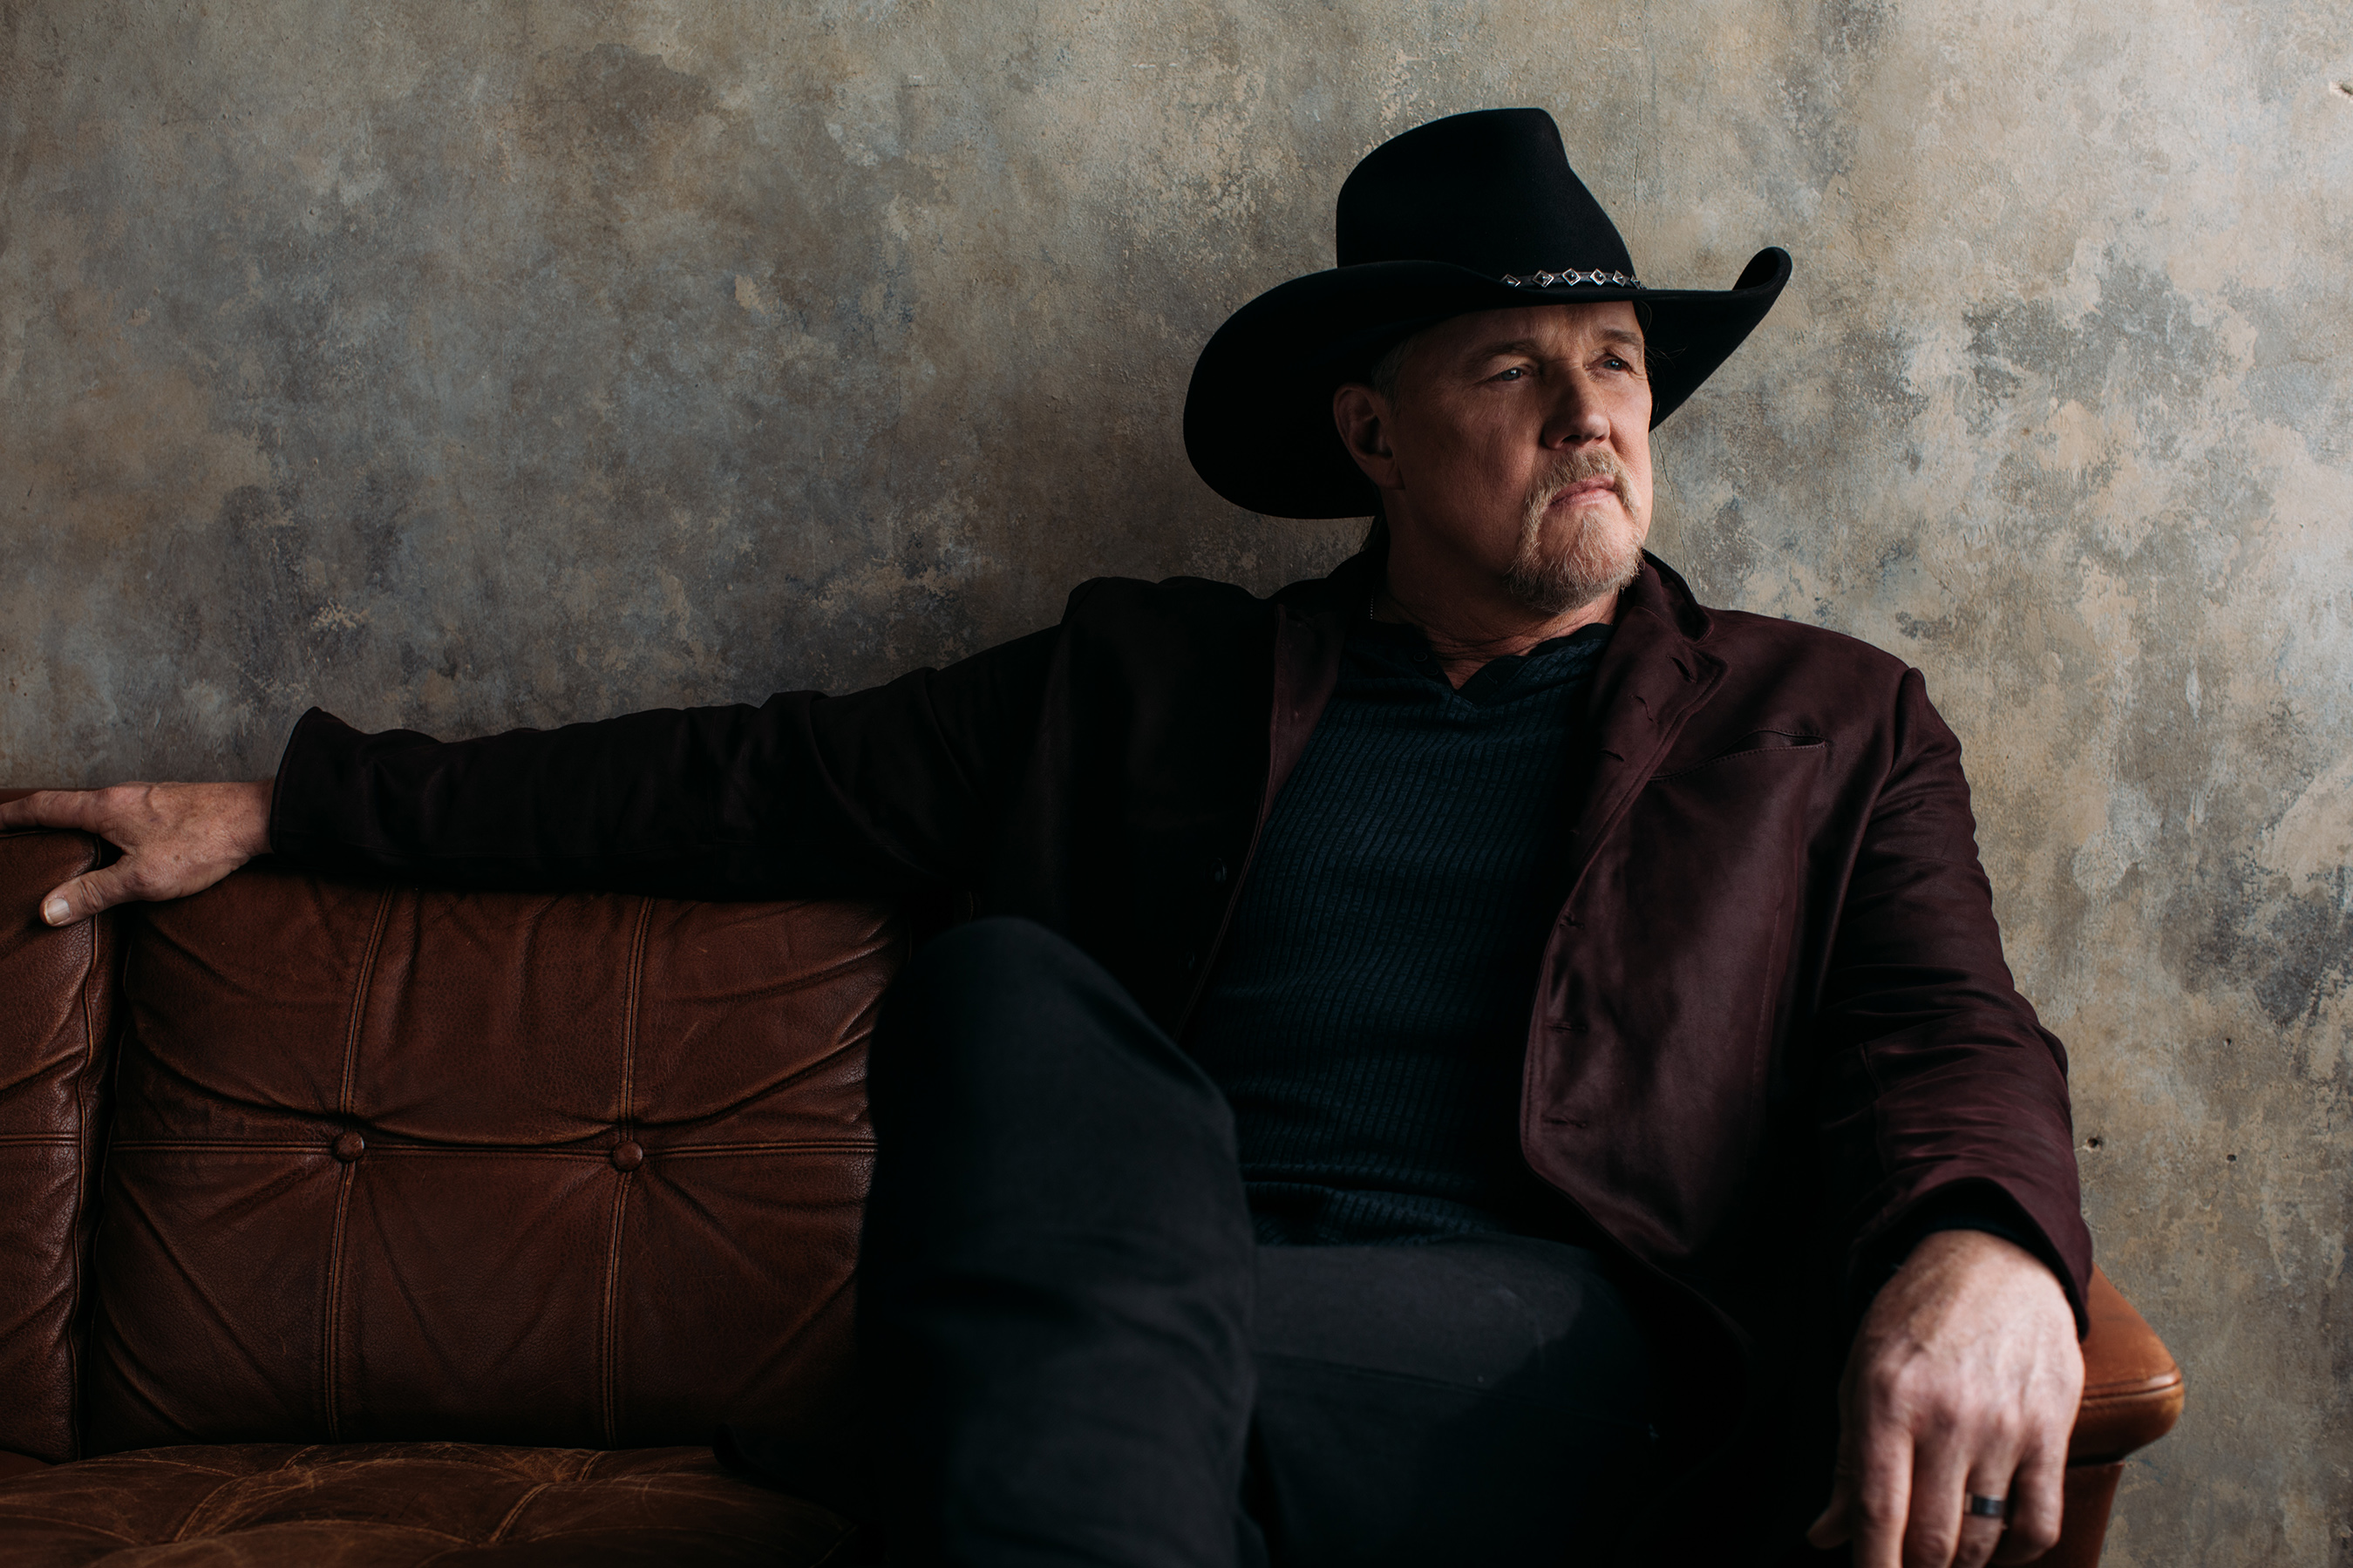 Country music star and Grammy-nominated member of the Grand Ole Opry, Trace Adkins, performs on PBS' special presentation of the NATIONAL MEMORIAL DAY CONCERT featuring new performances and tributes filmed around the country honoring all of our American heroes.